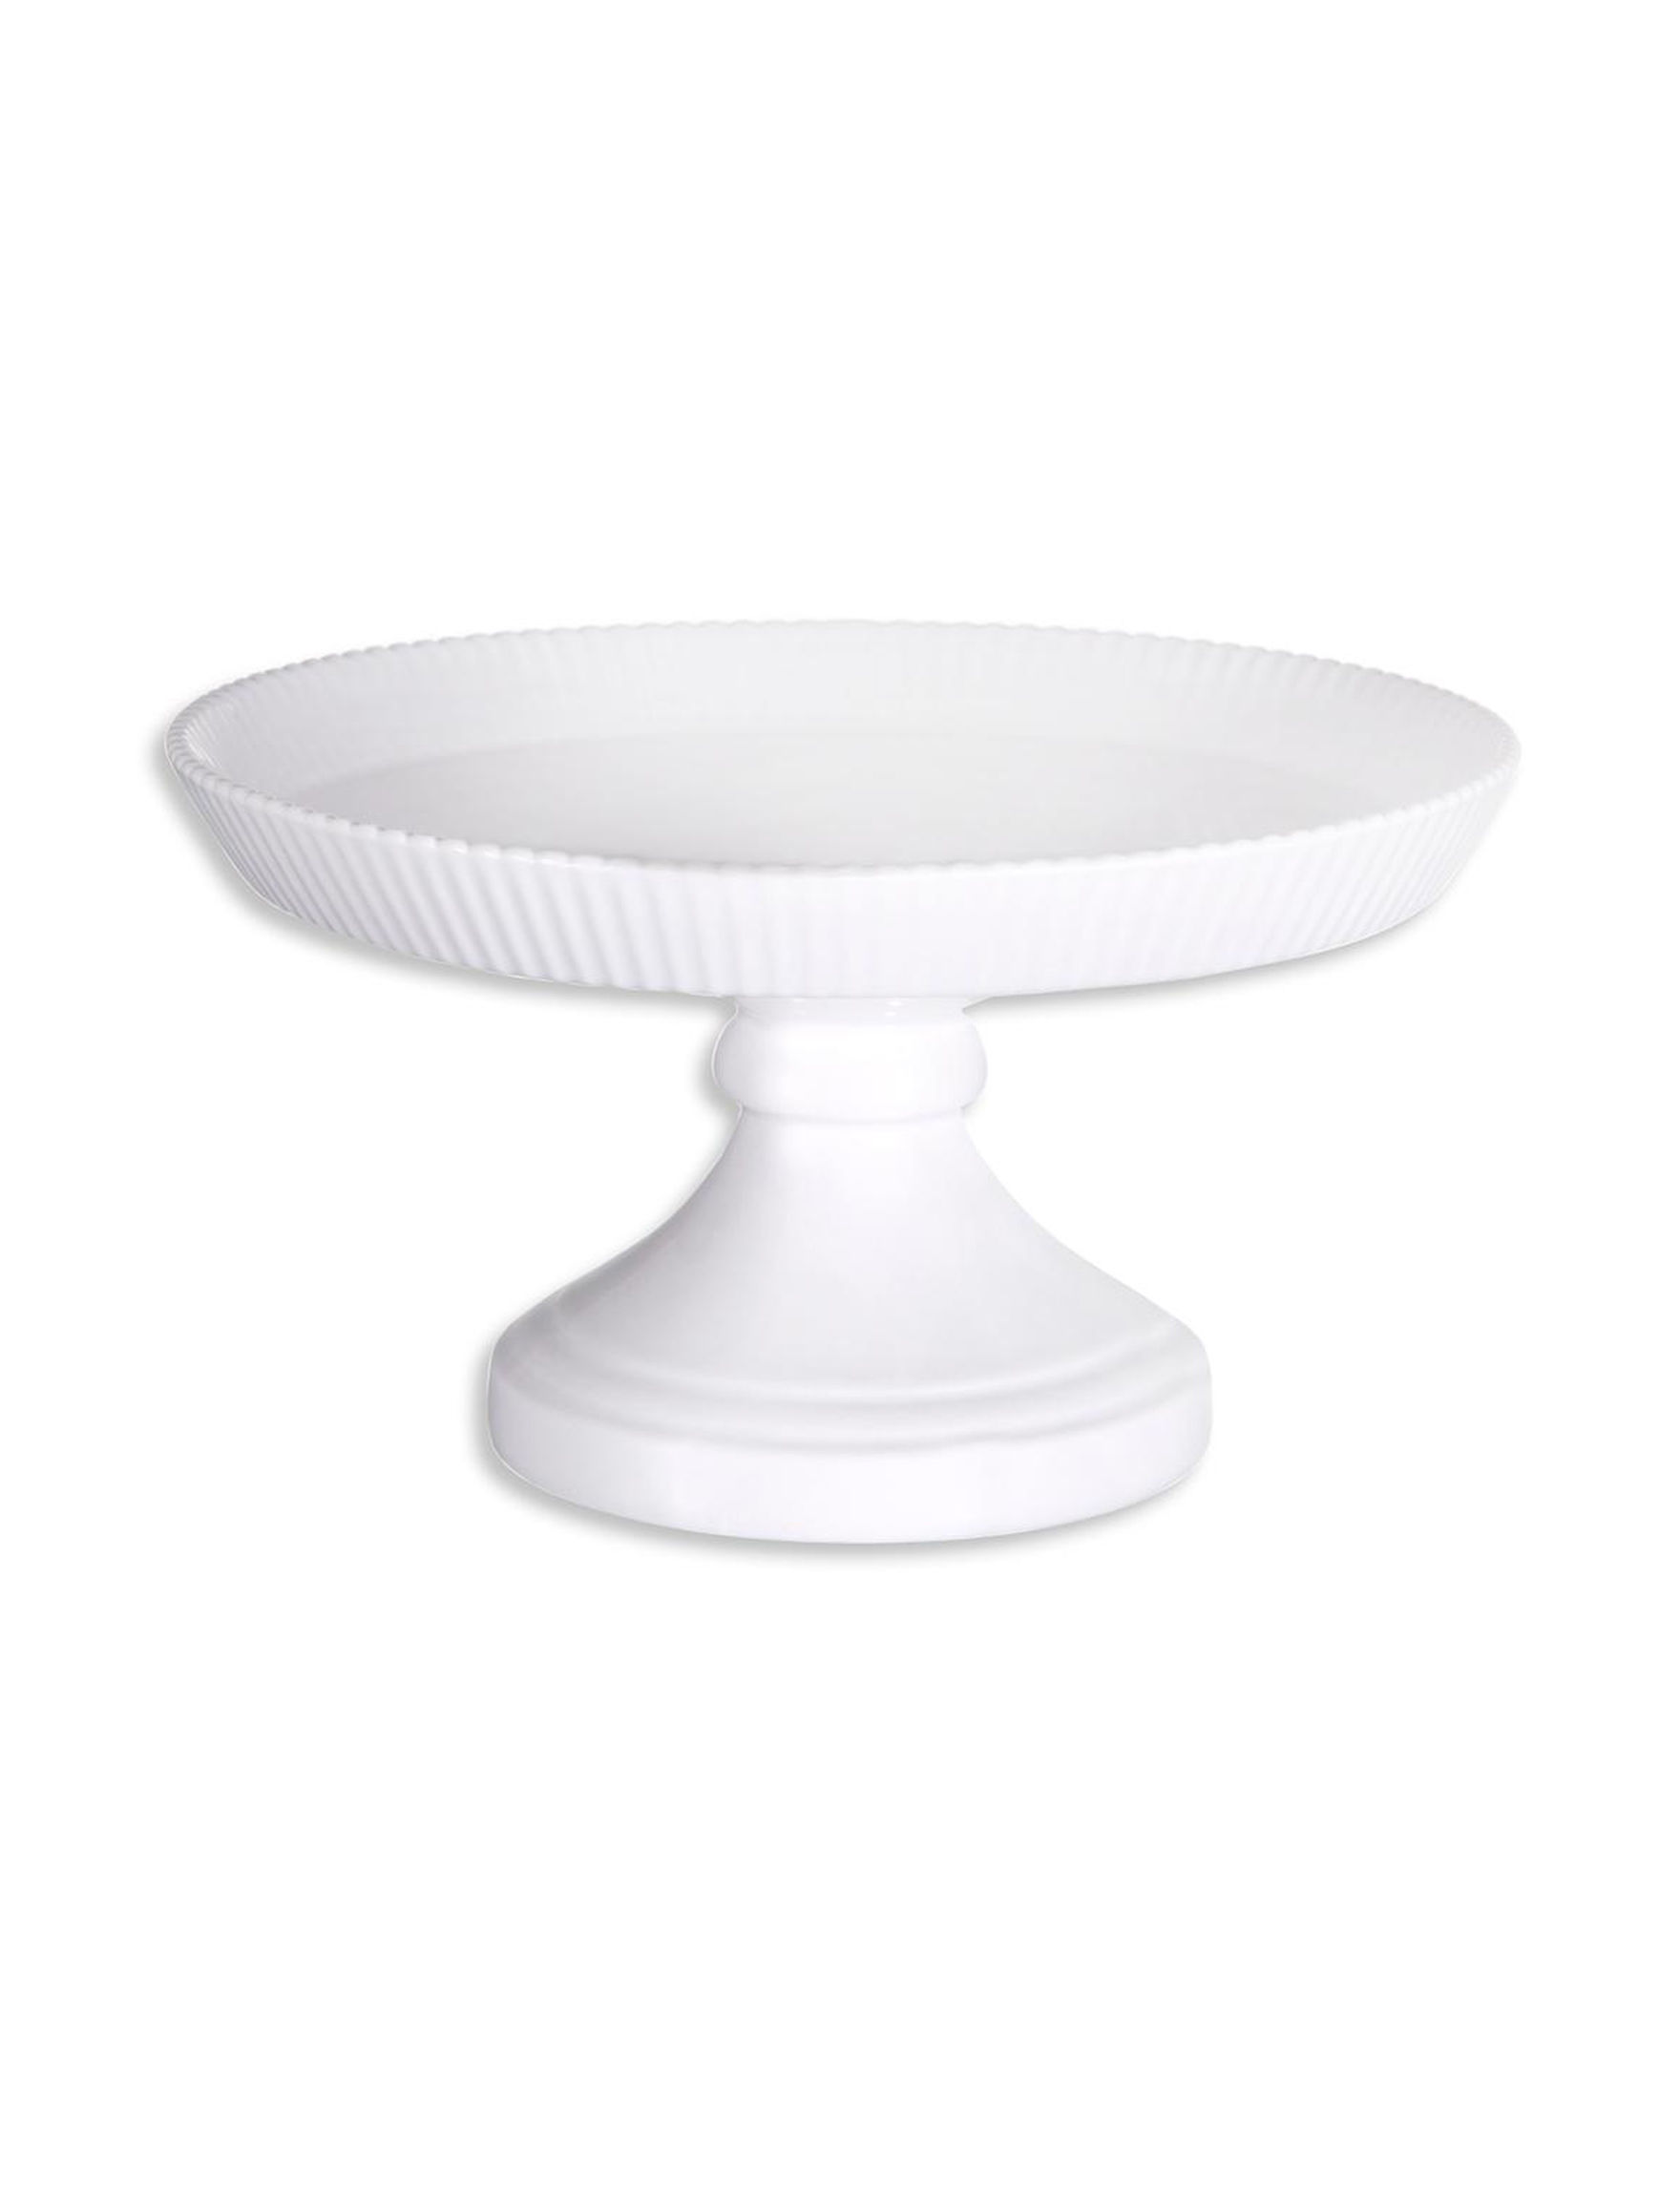 Home Essentials White / Silver Cake Stands & Tiered Servers Serveware